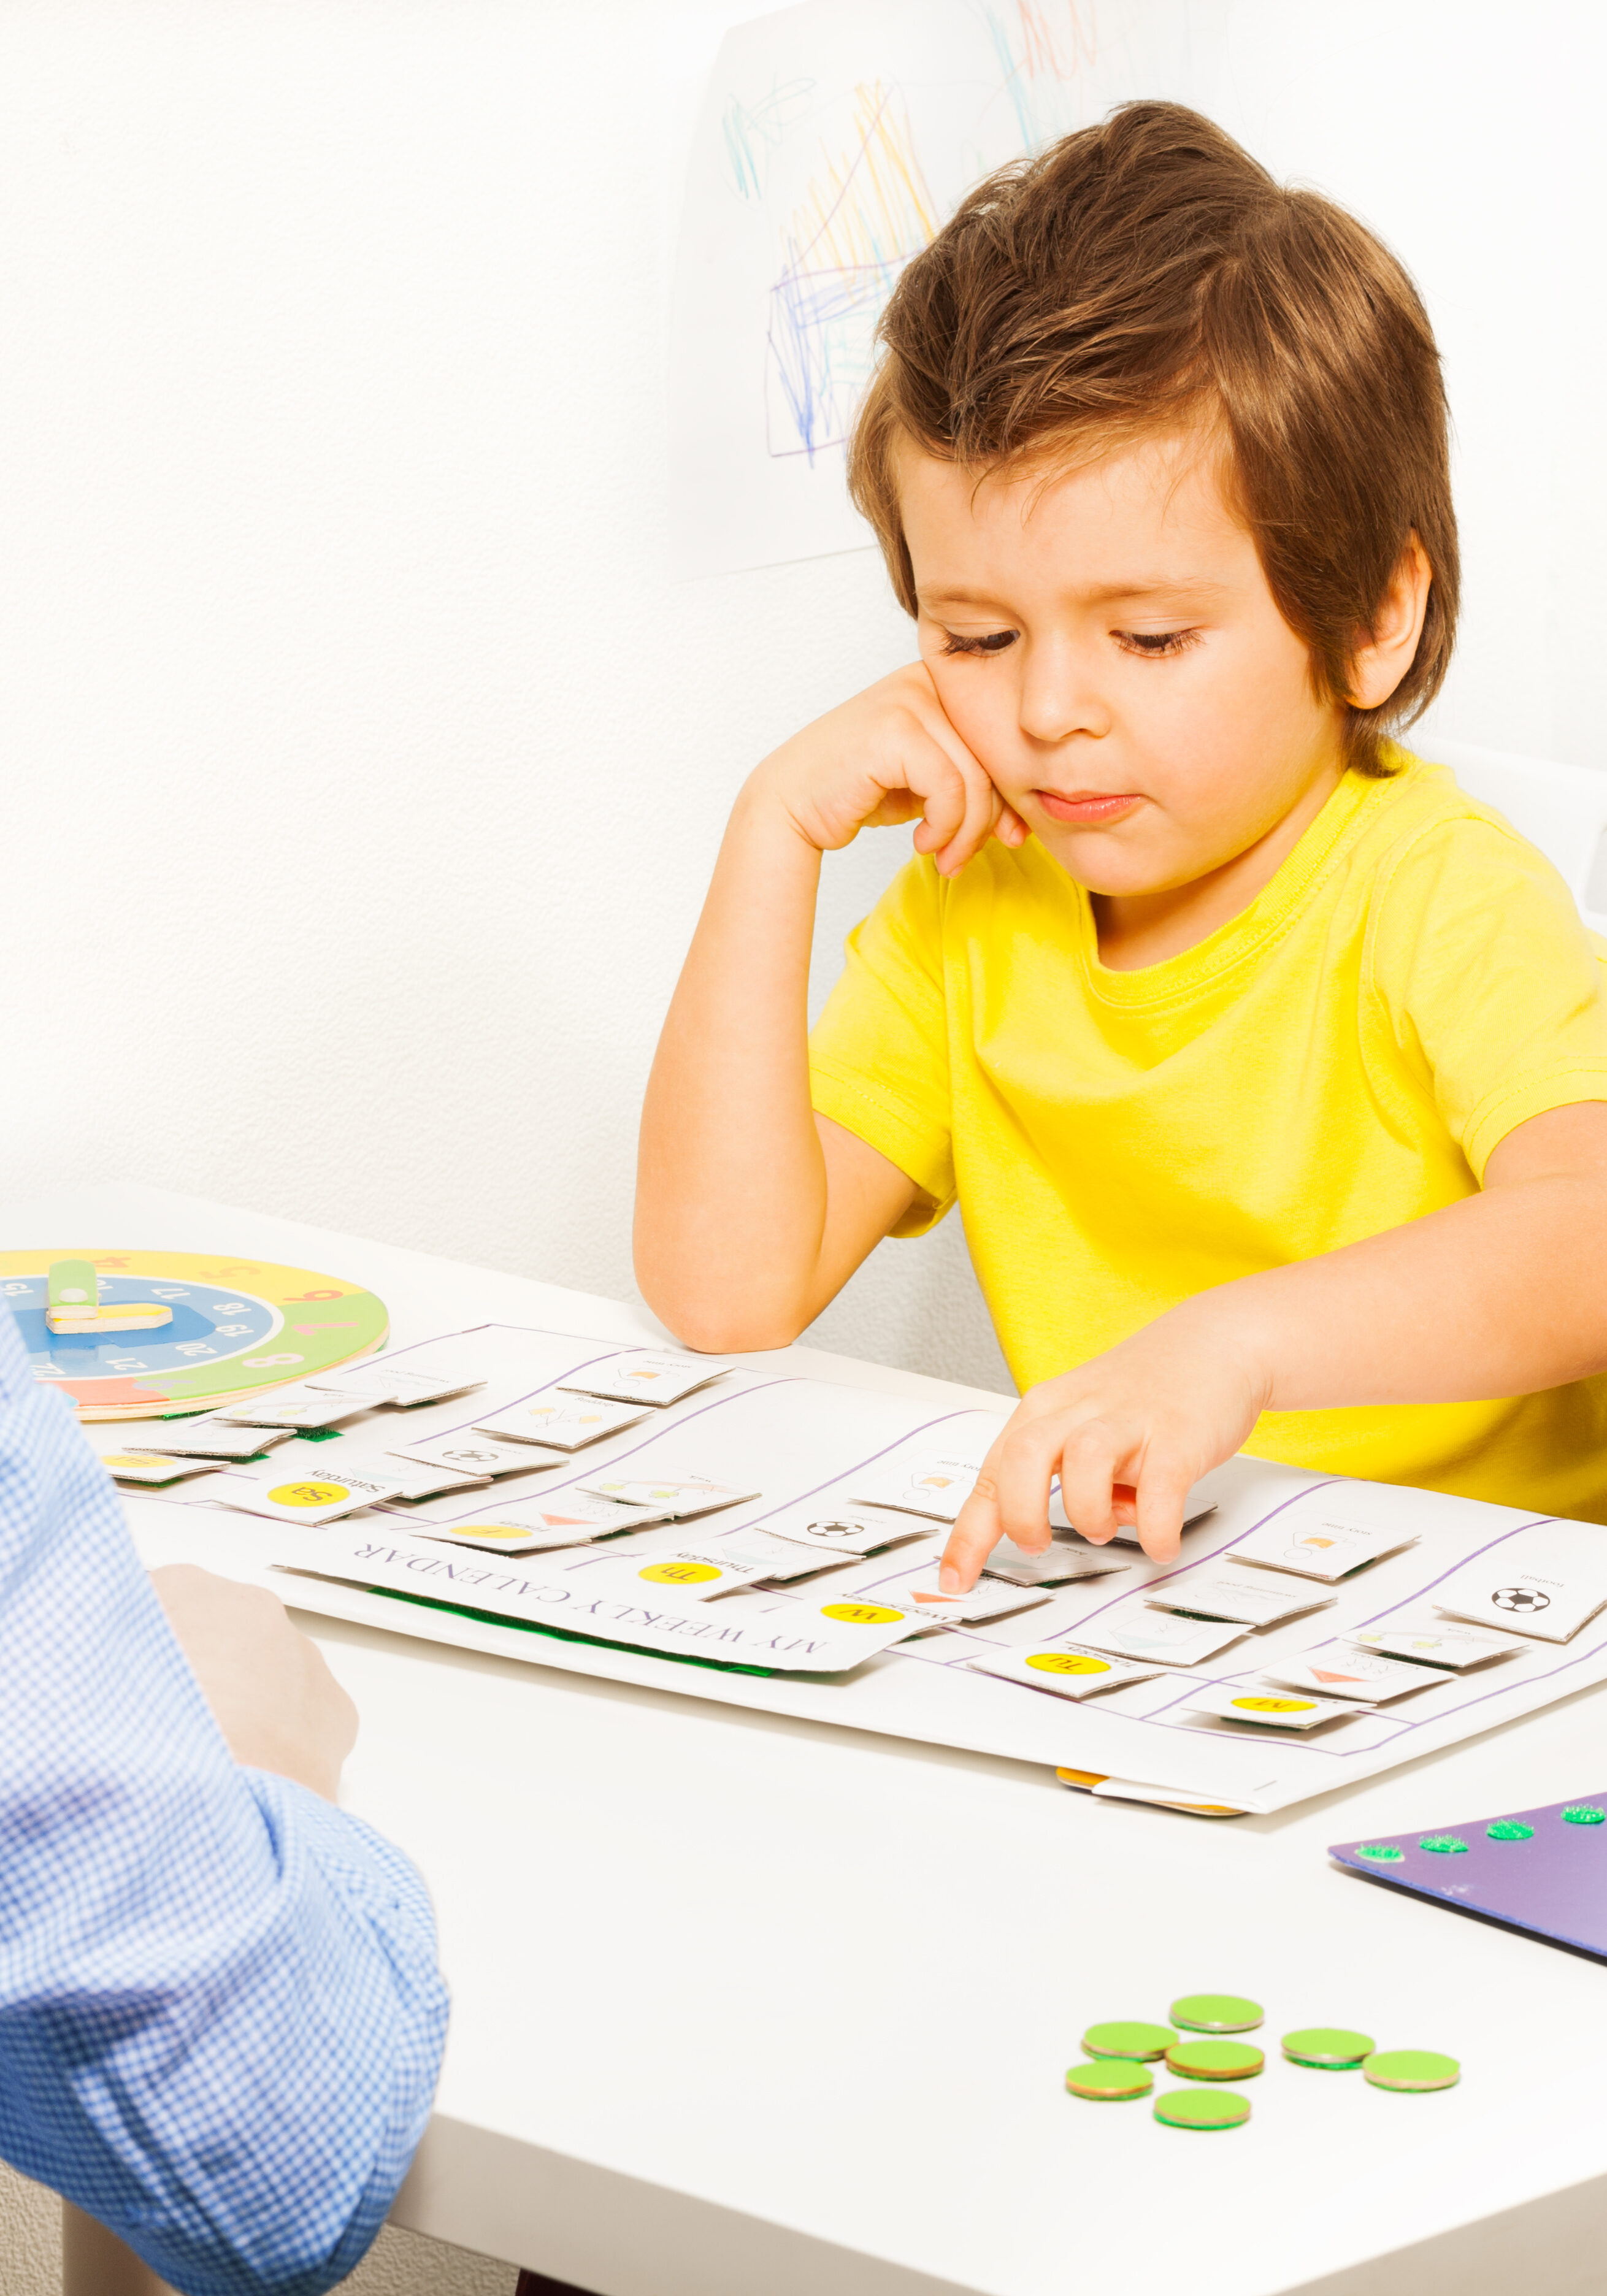 Boy pointing at colorful day activities cards on calendar during developing game with his parent sitting opposite at the table in the room